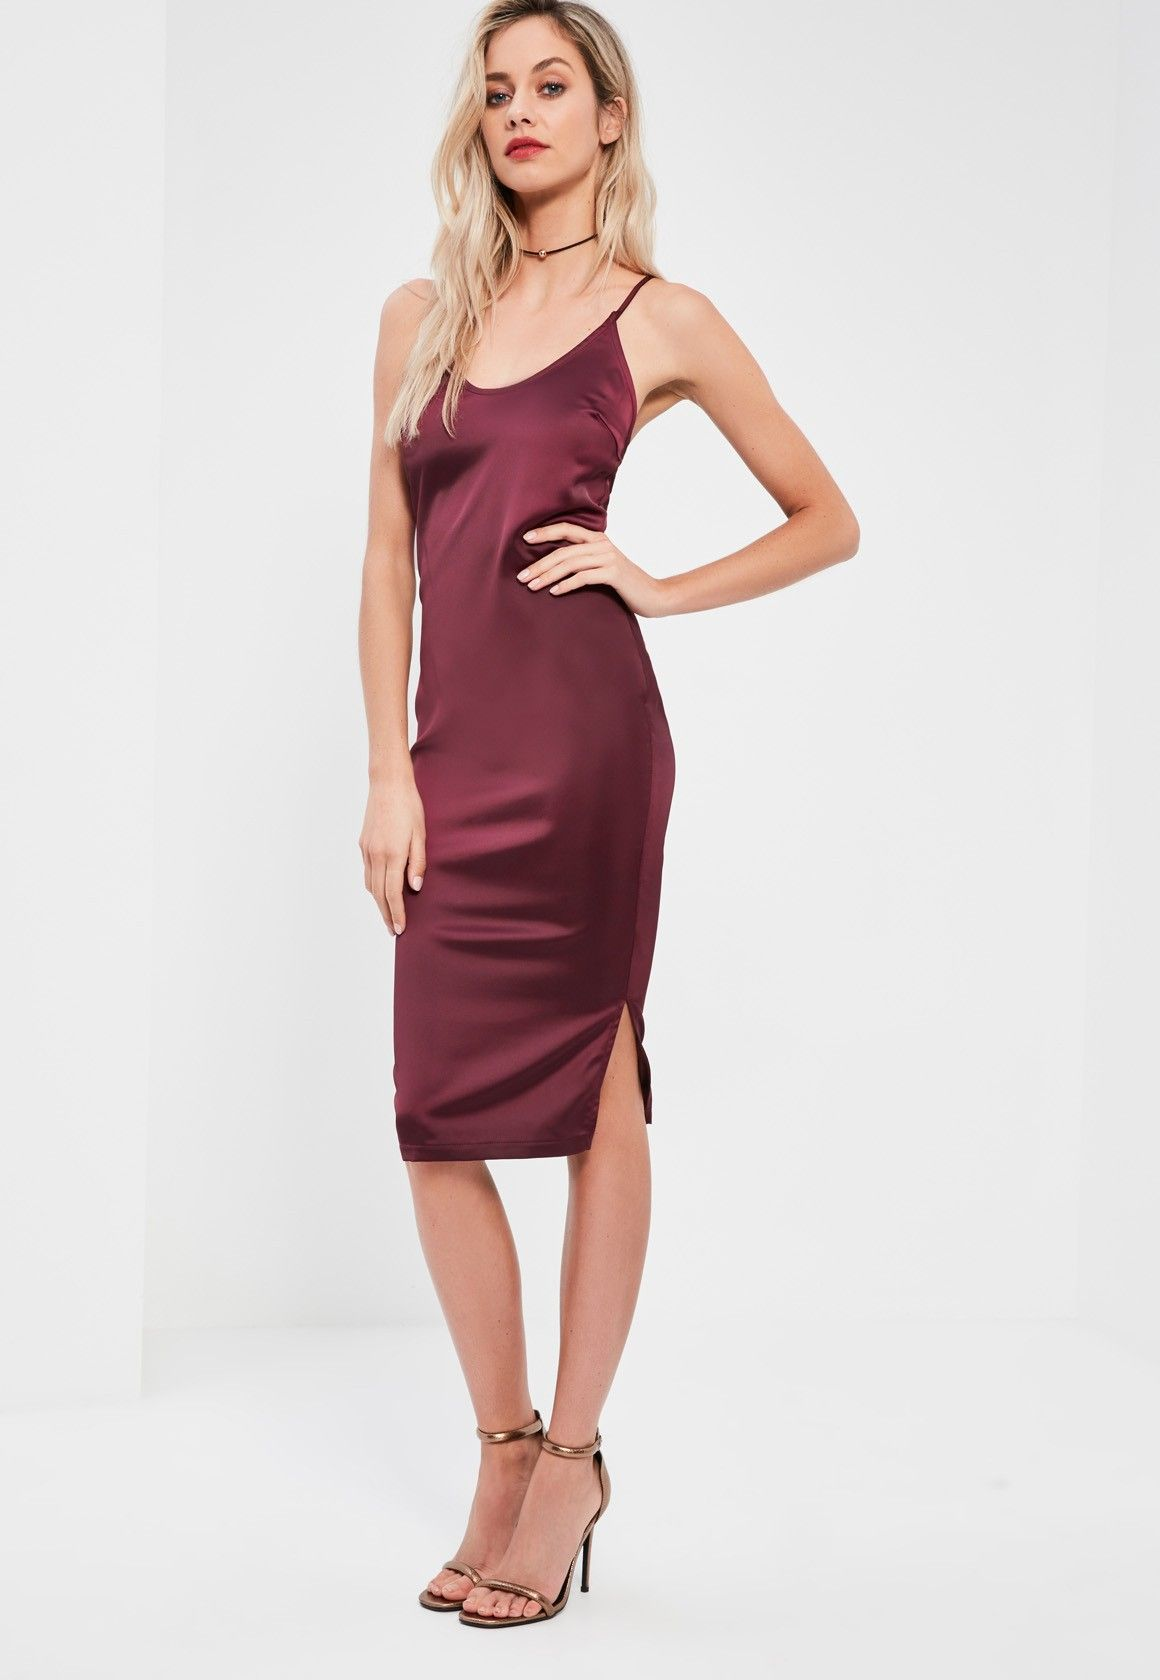 Missguided - Burgundy Silky Plunge Midi Dress  bfbd9ec80